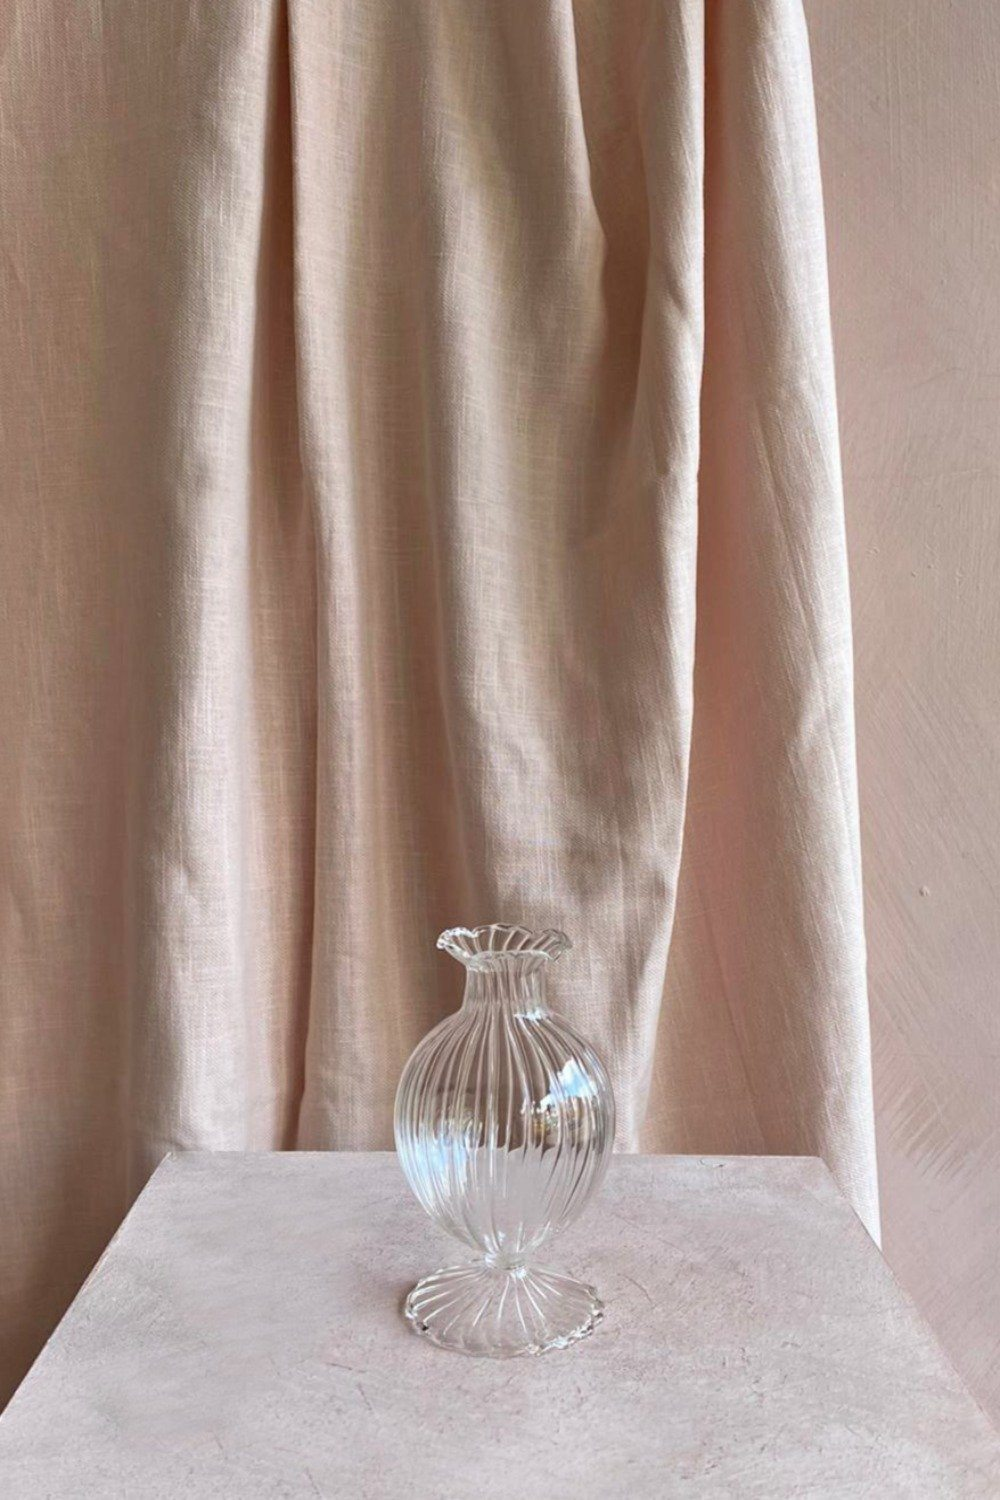 Glass Tulip Shaped Bud Vase Homewares Blume